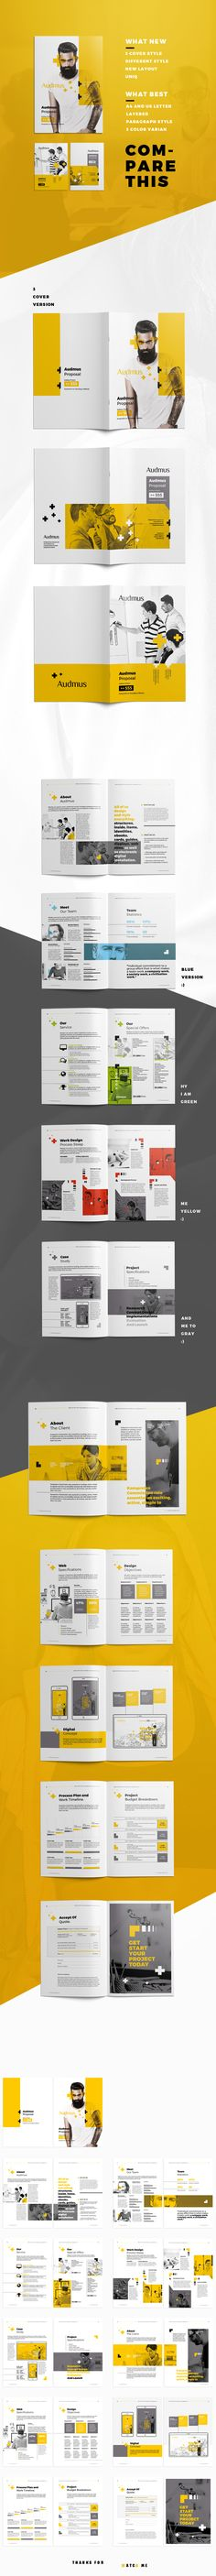 a4, brand, brief, brochure design, business, business proposal, clean, corporate, creative, design, egotype, identity, indesign, indesign templates, informational, light, minimal, modern, moscovita, professional, report, trend, trendy, us letter, visual,…